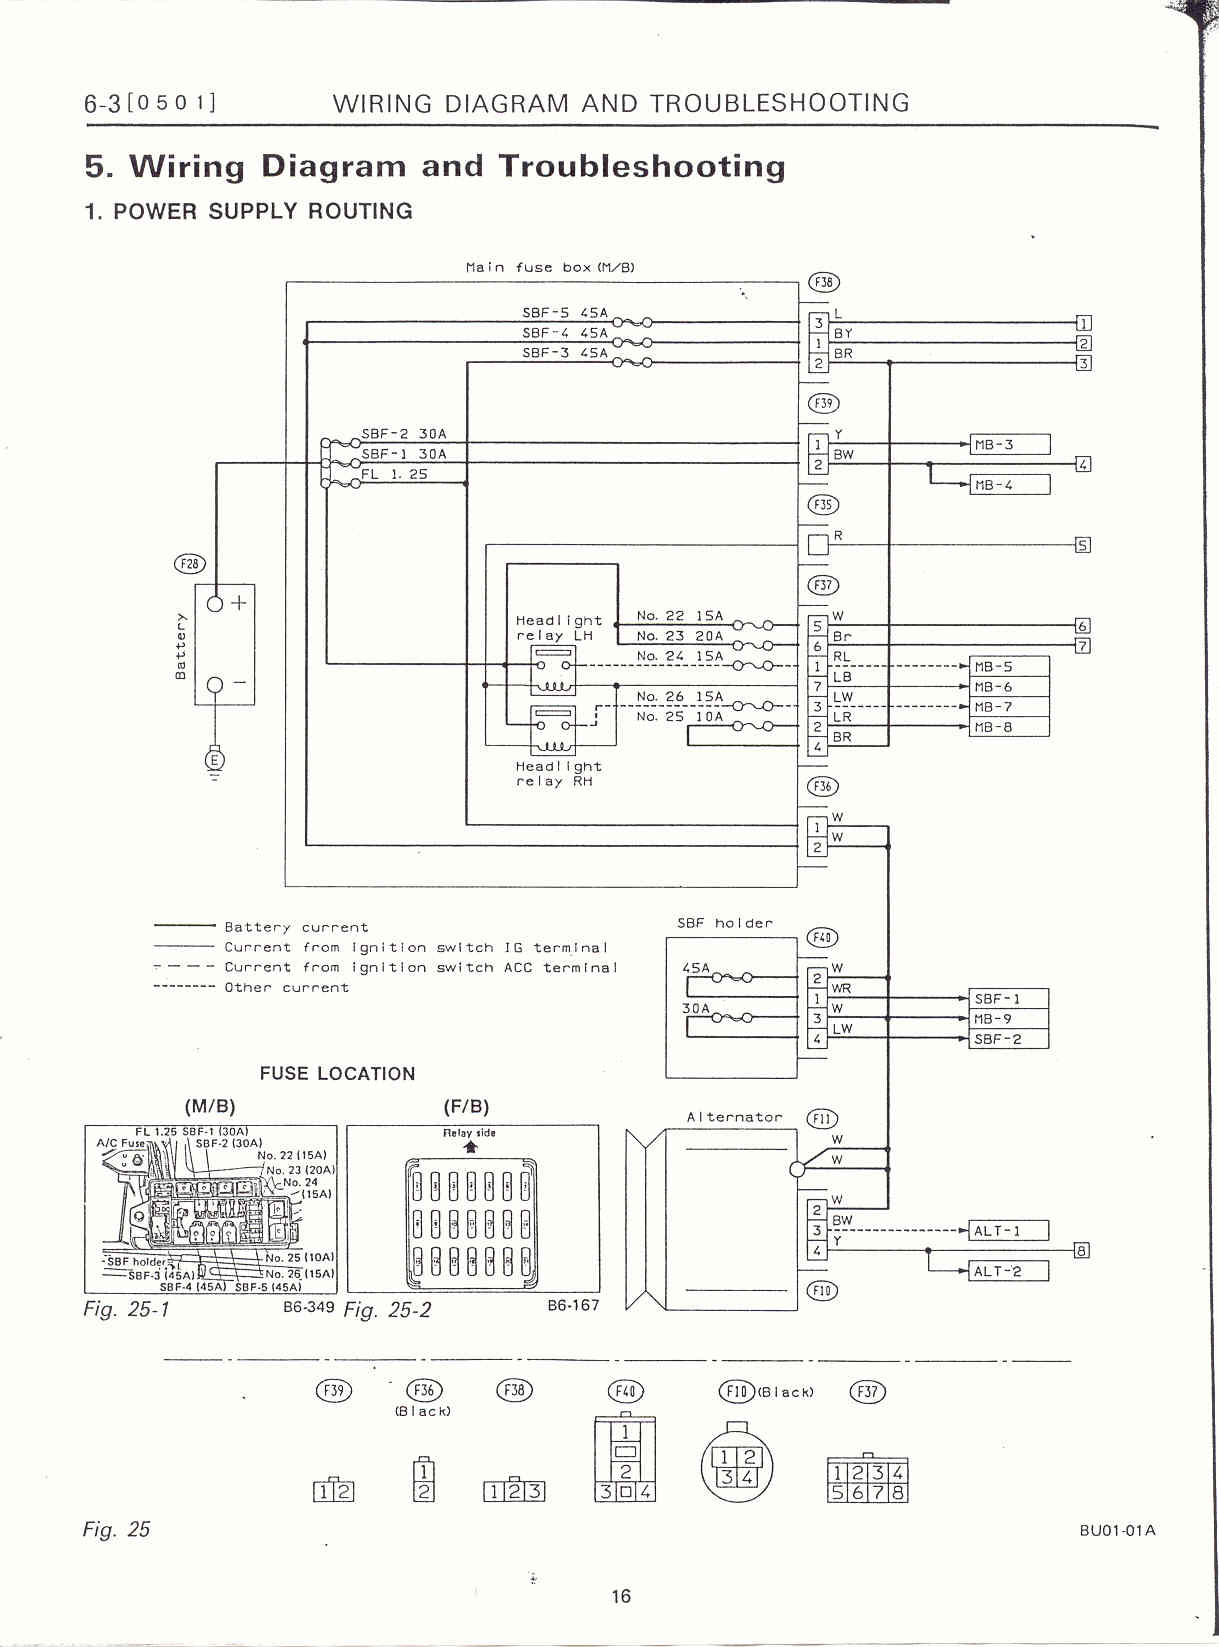 Surrealmirage Subaru Legacy Swap Electrical Info Notes Rav4 Reverse Light Wiring Diagram Power Supply Routing Page 1